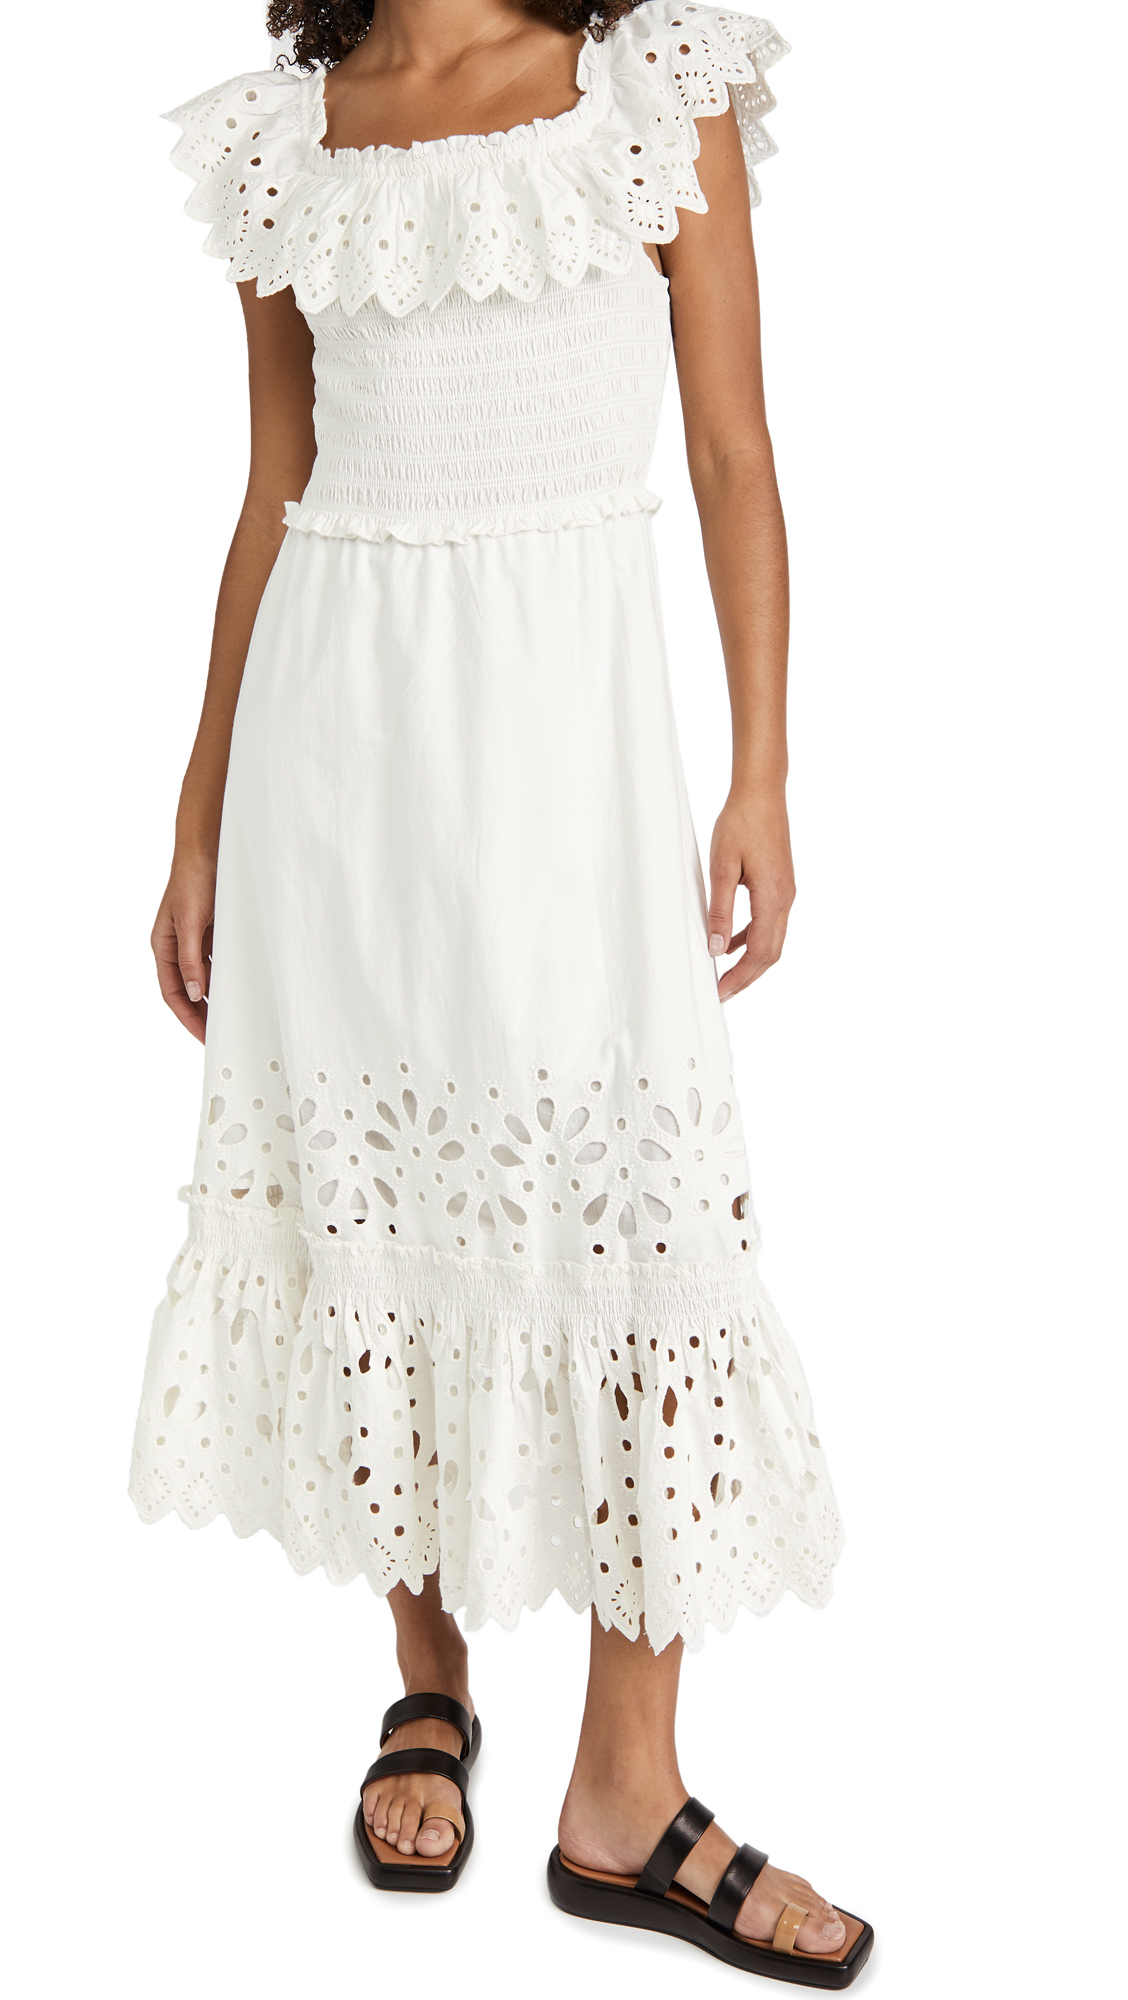 Sea Hazel Eyelet Smocked Ruffle Dress